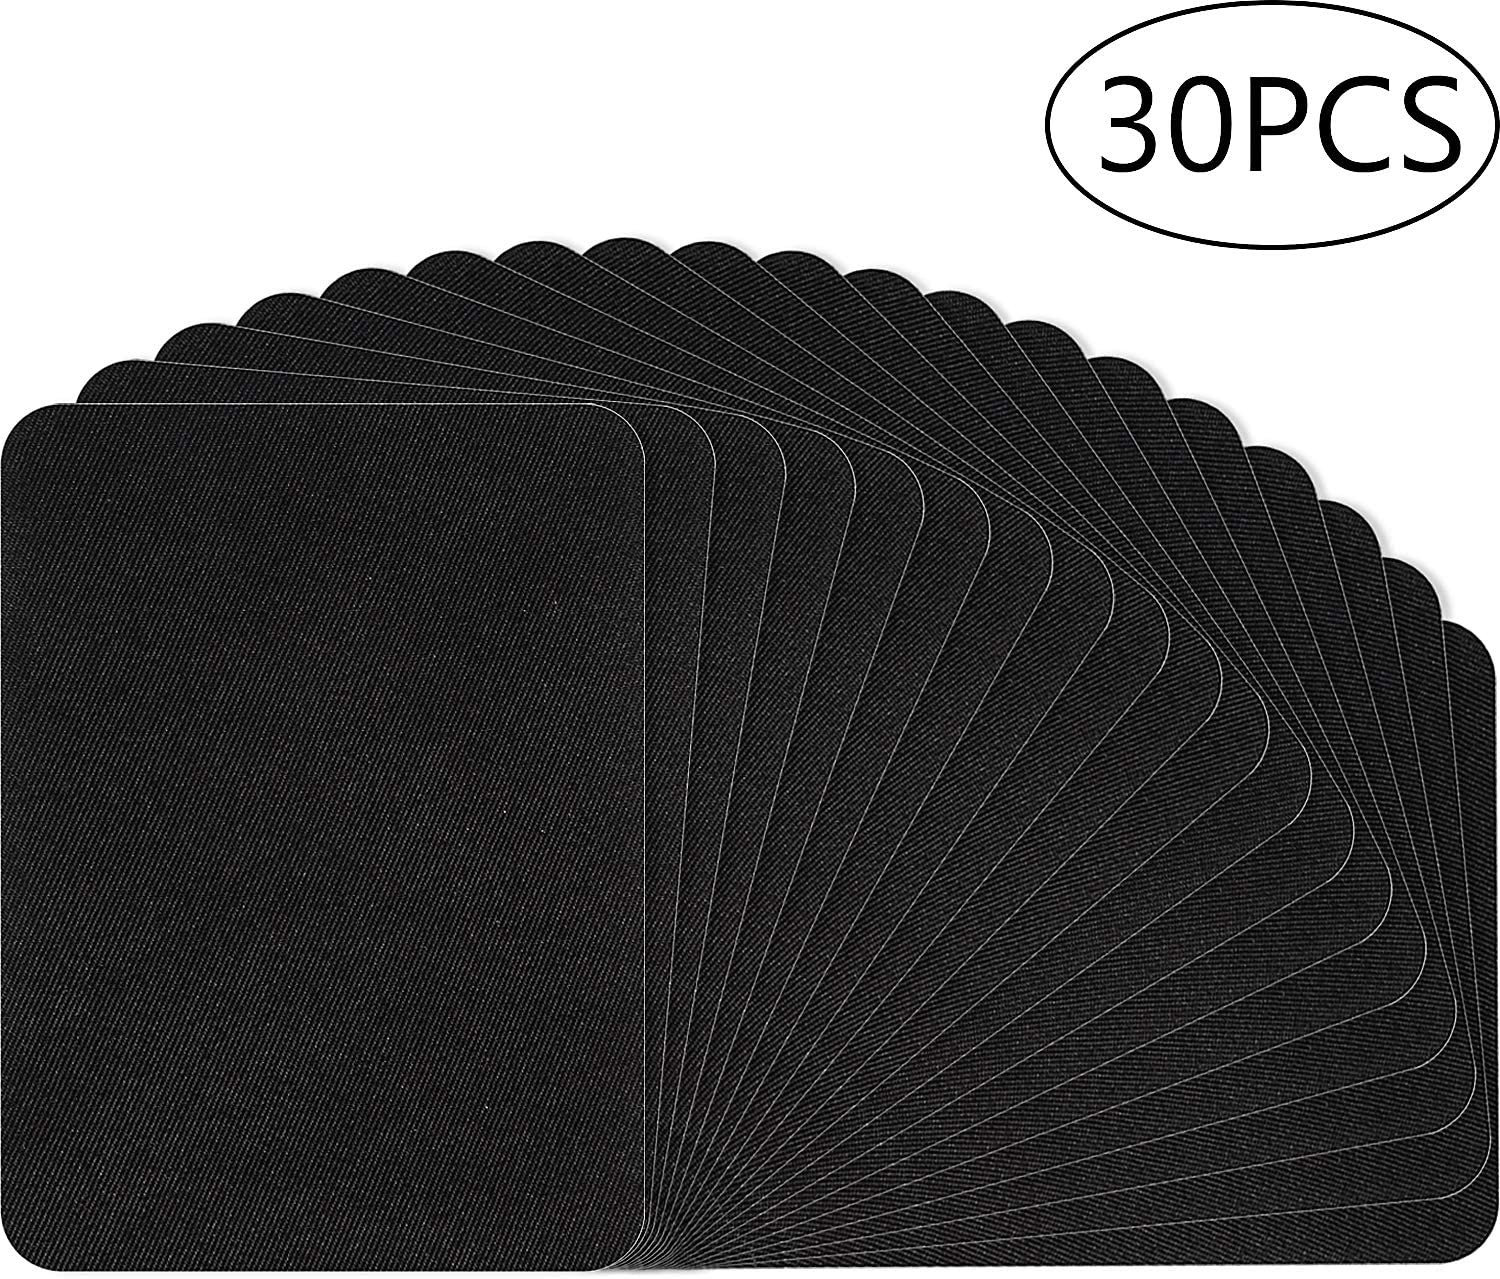 30 Pieces Iron on Patches Black Fabric Iron on Patches Repair kit Large Size for Clothes, Pants, Jeans, Jackets (Black)